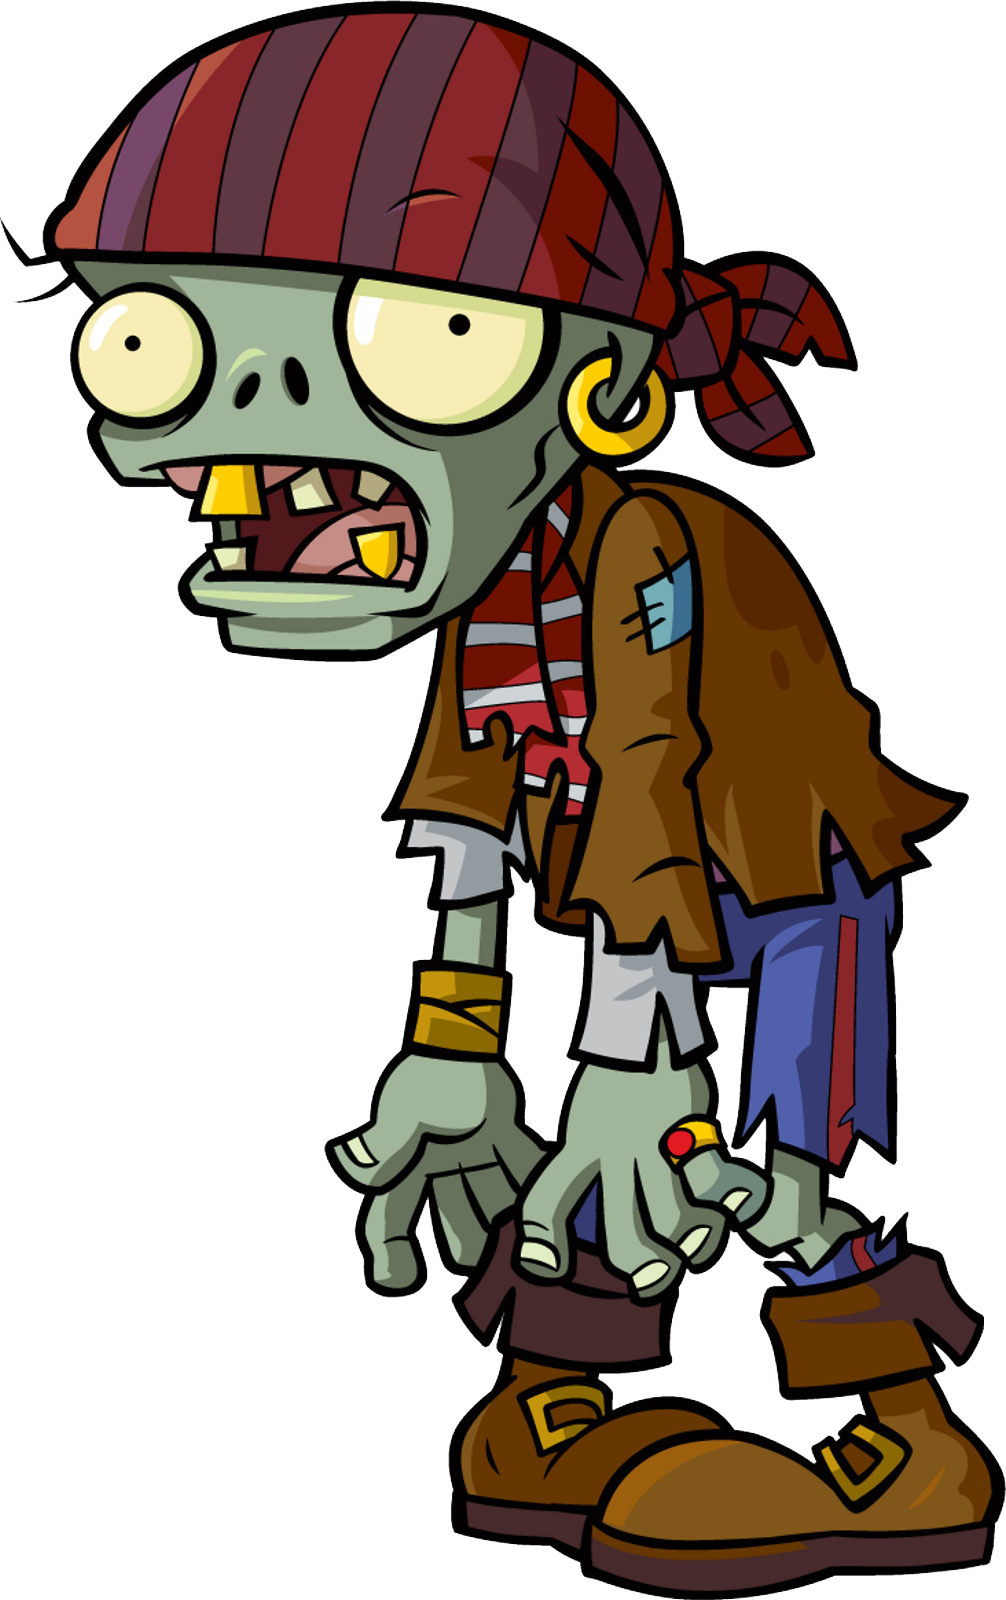 Icons] Plants Vs Zombies's png icons | Plants Vs Zombies Zombie Head Png